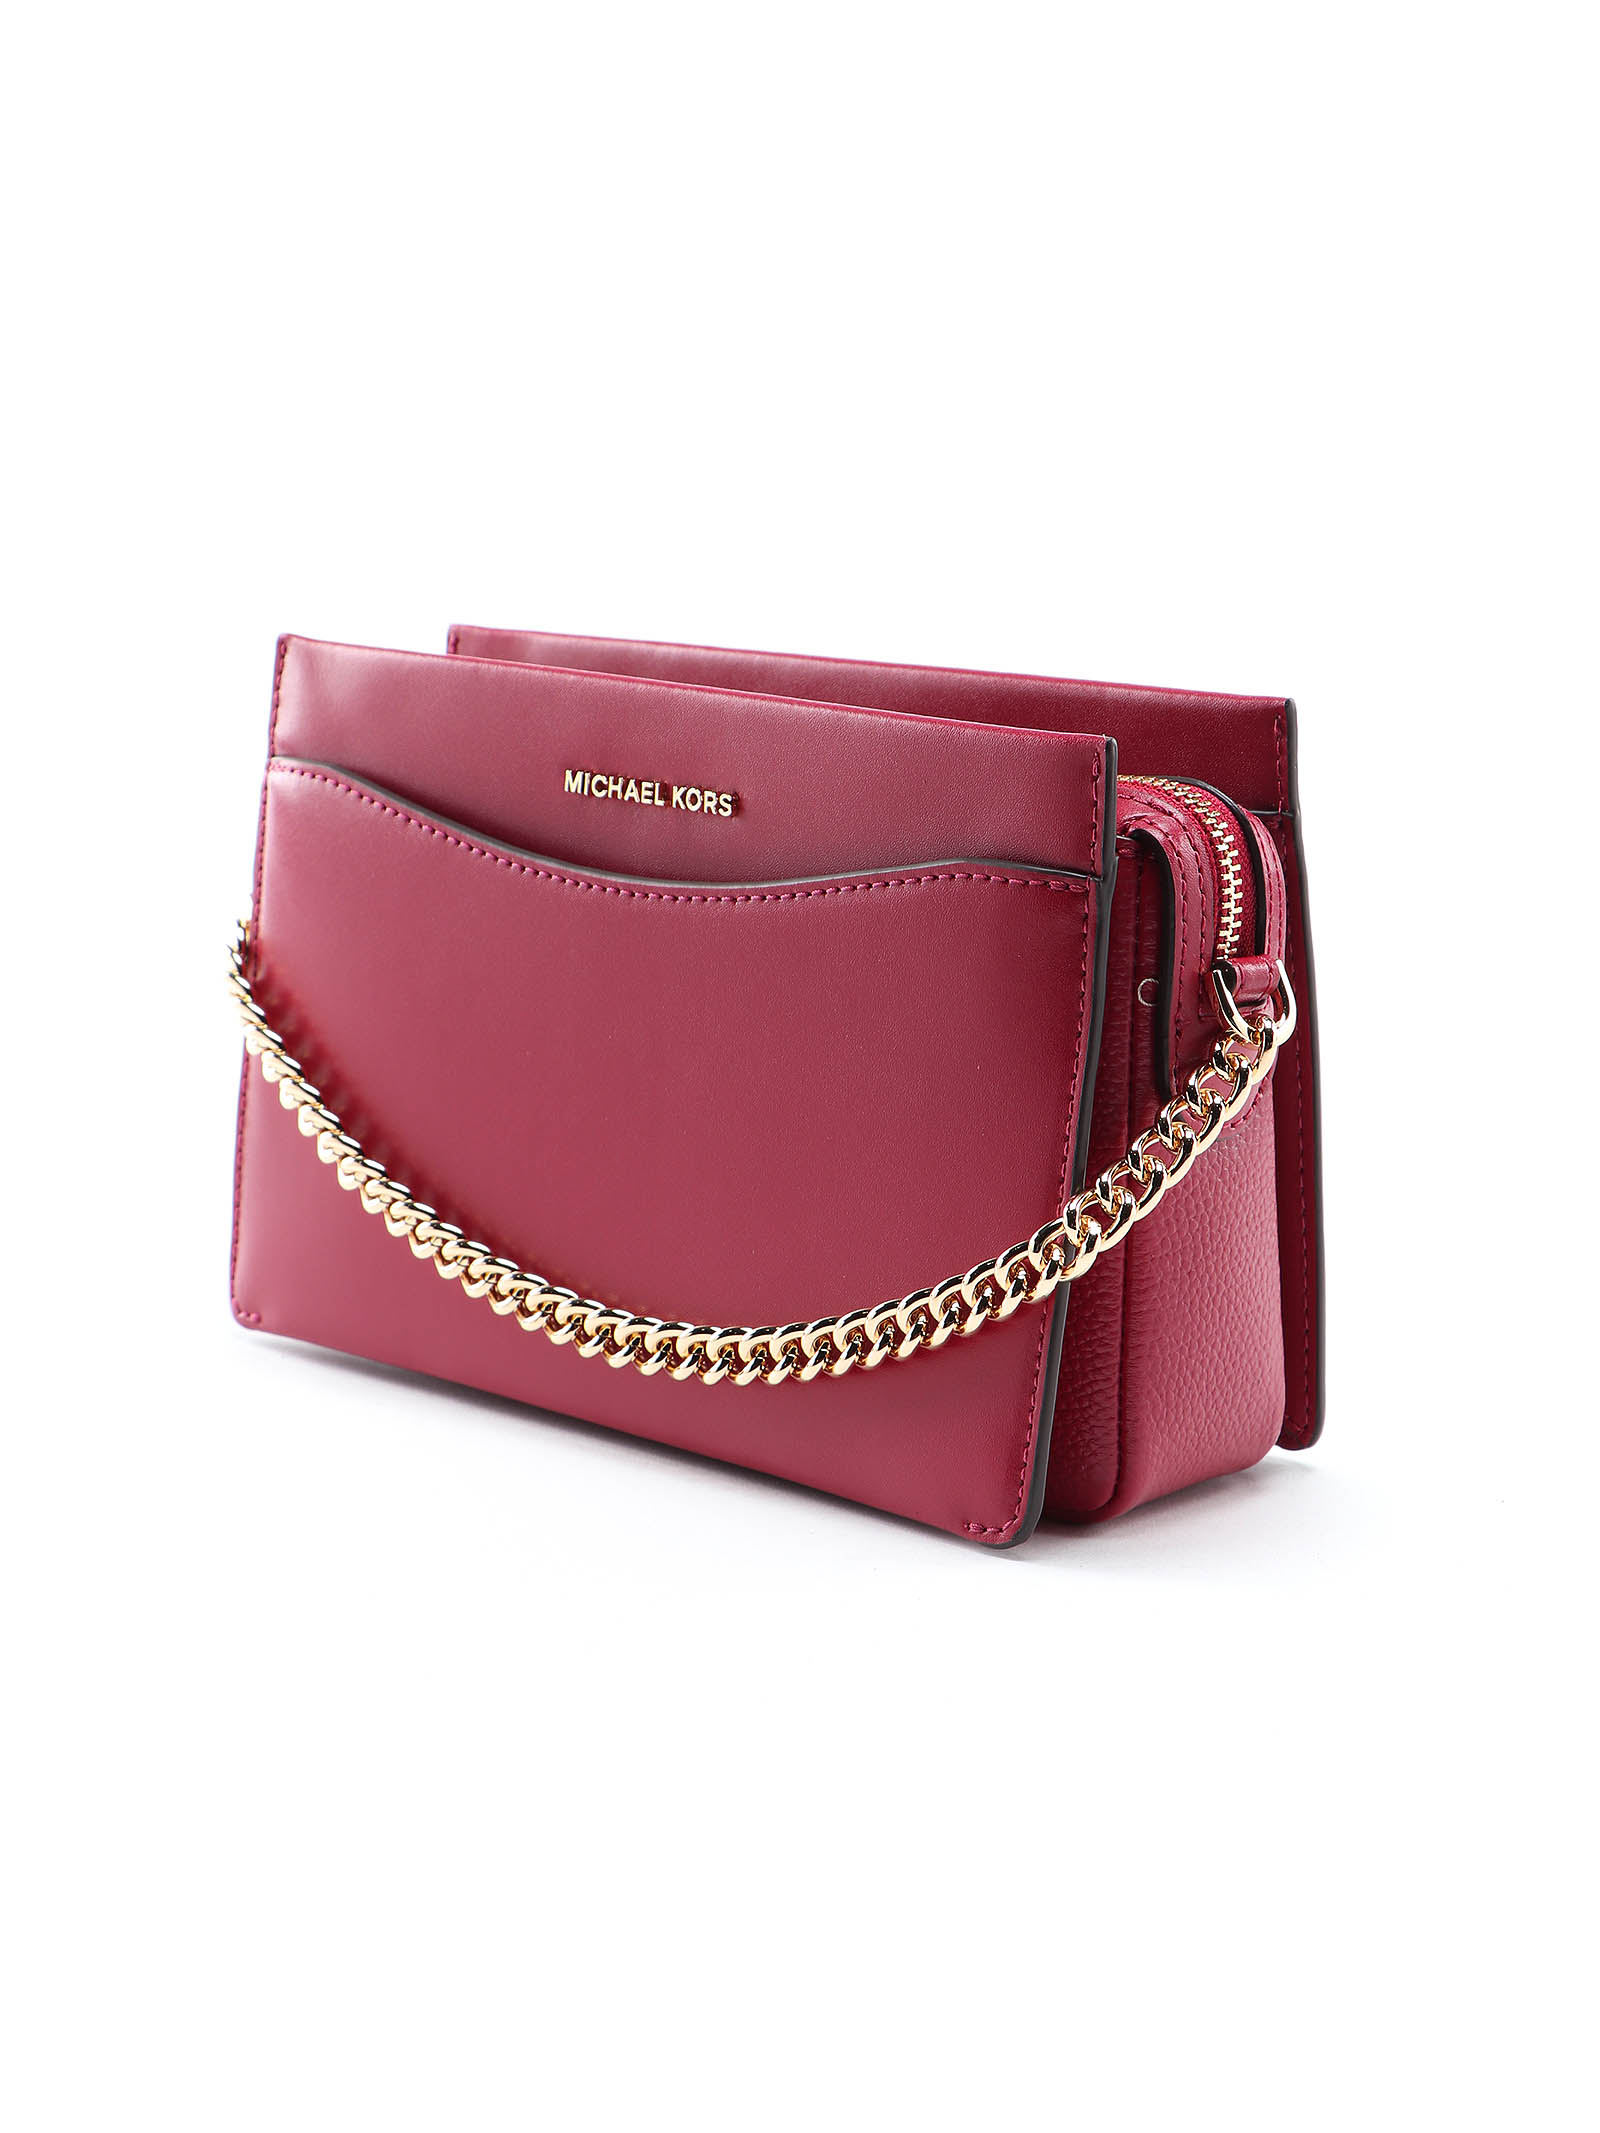 Picture of Michael Kors   Jet Set Lg Conv Chain Xbody